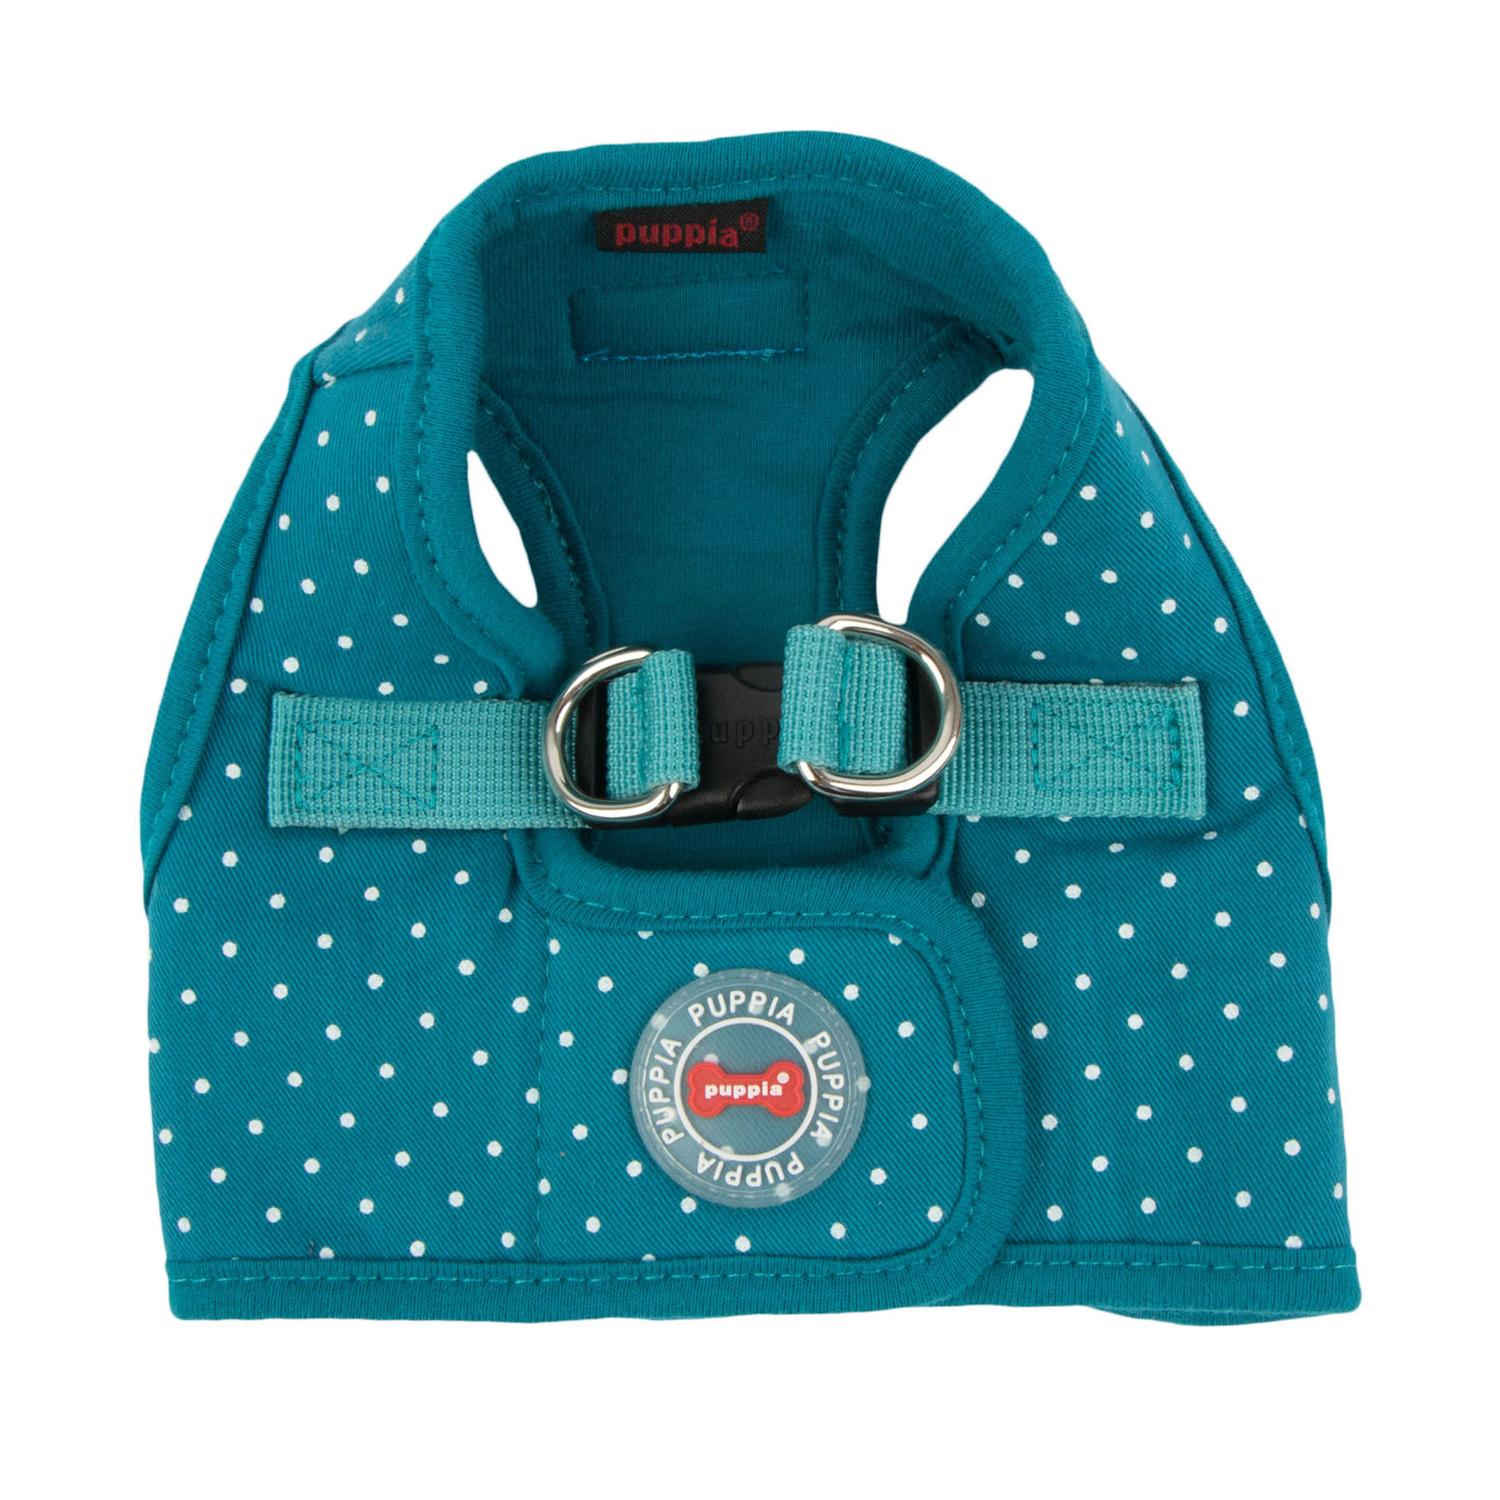 Dotty Dog Harness Vest by Puppia - Teal